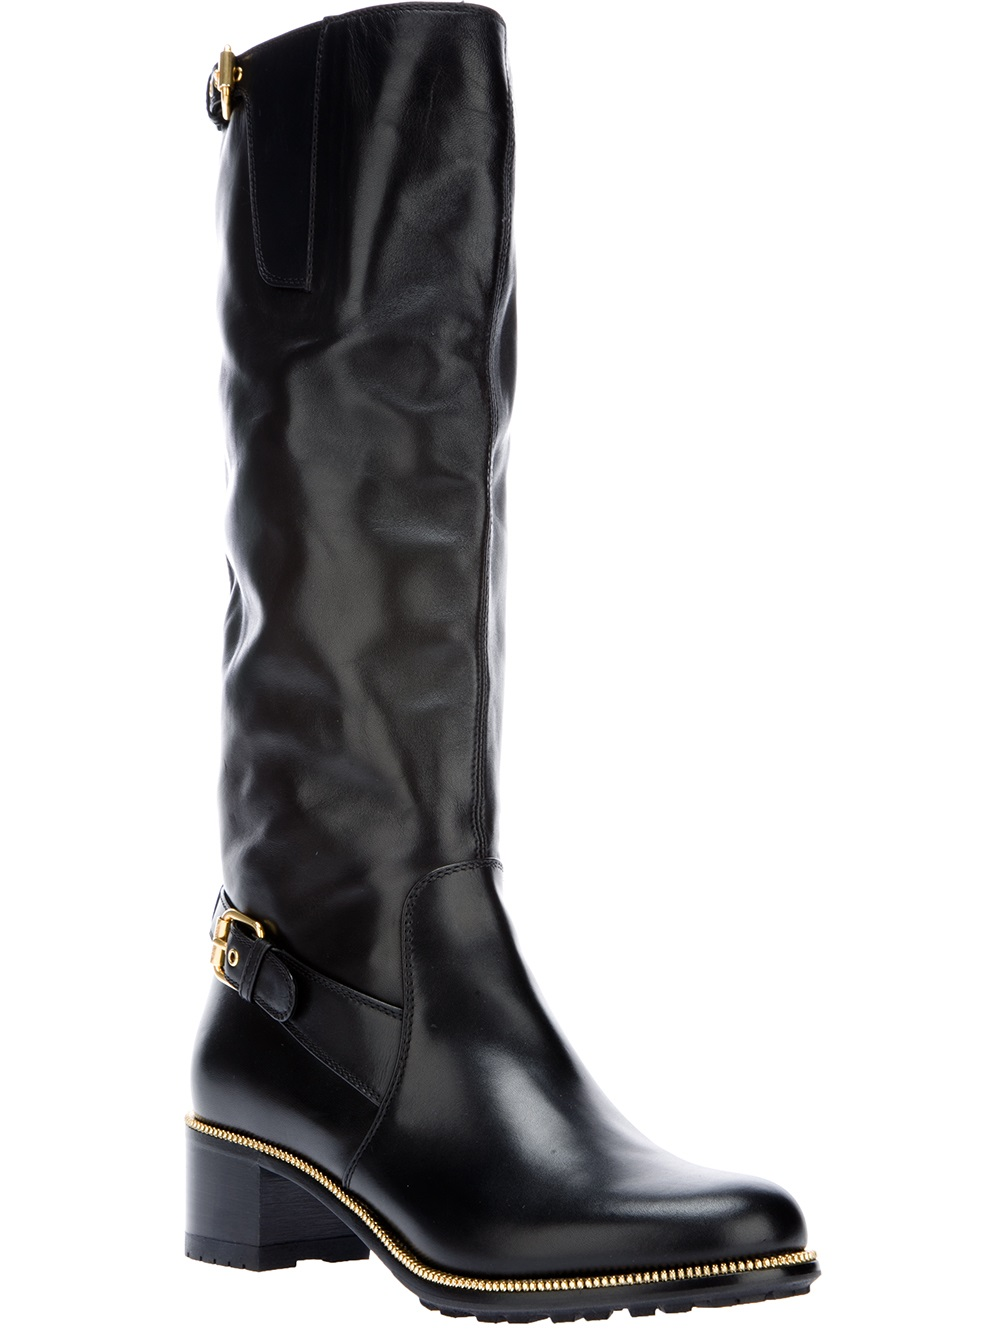 sergio rossi buckled knee high boot in black lyst. Black Bedroom Furniture Sets. Home Design Ideas